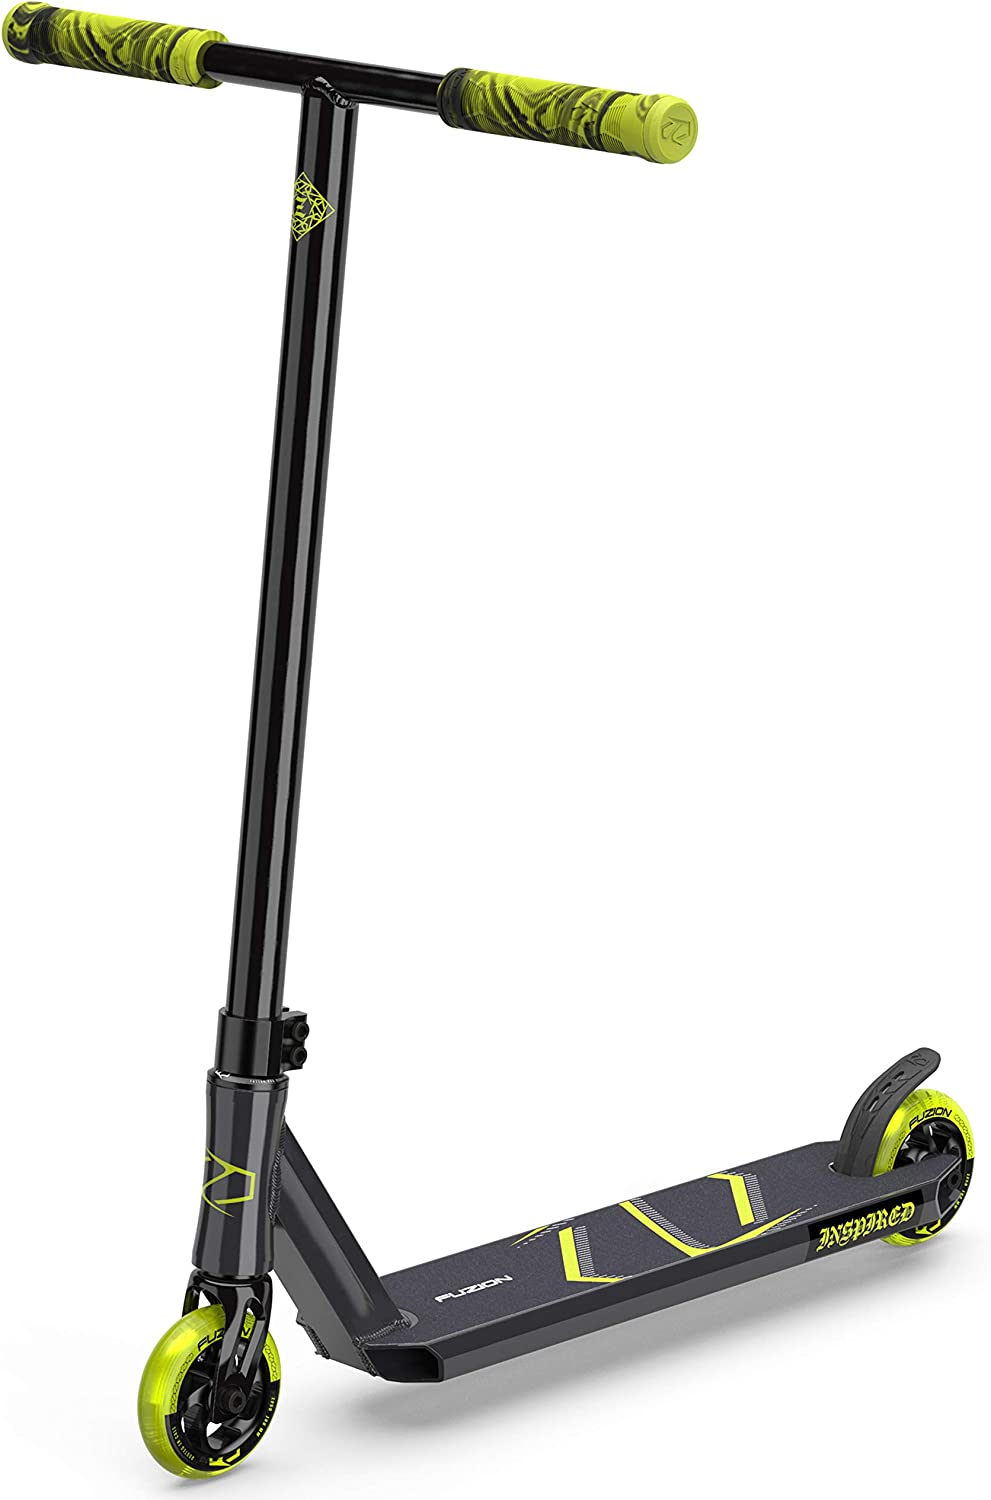 Buy Fuzion Z20 Pro Scooters   Trick Scooter   Intermediate and ...